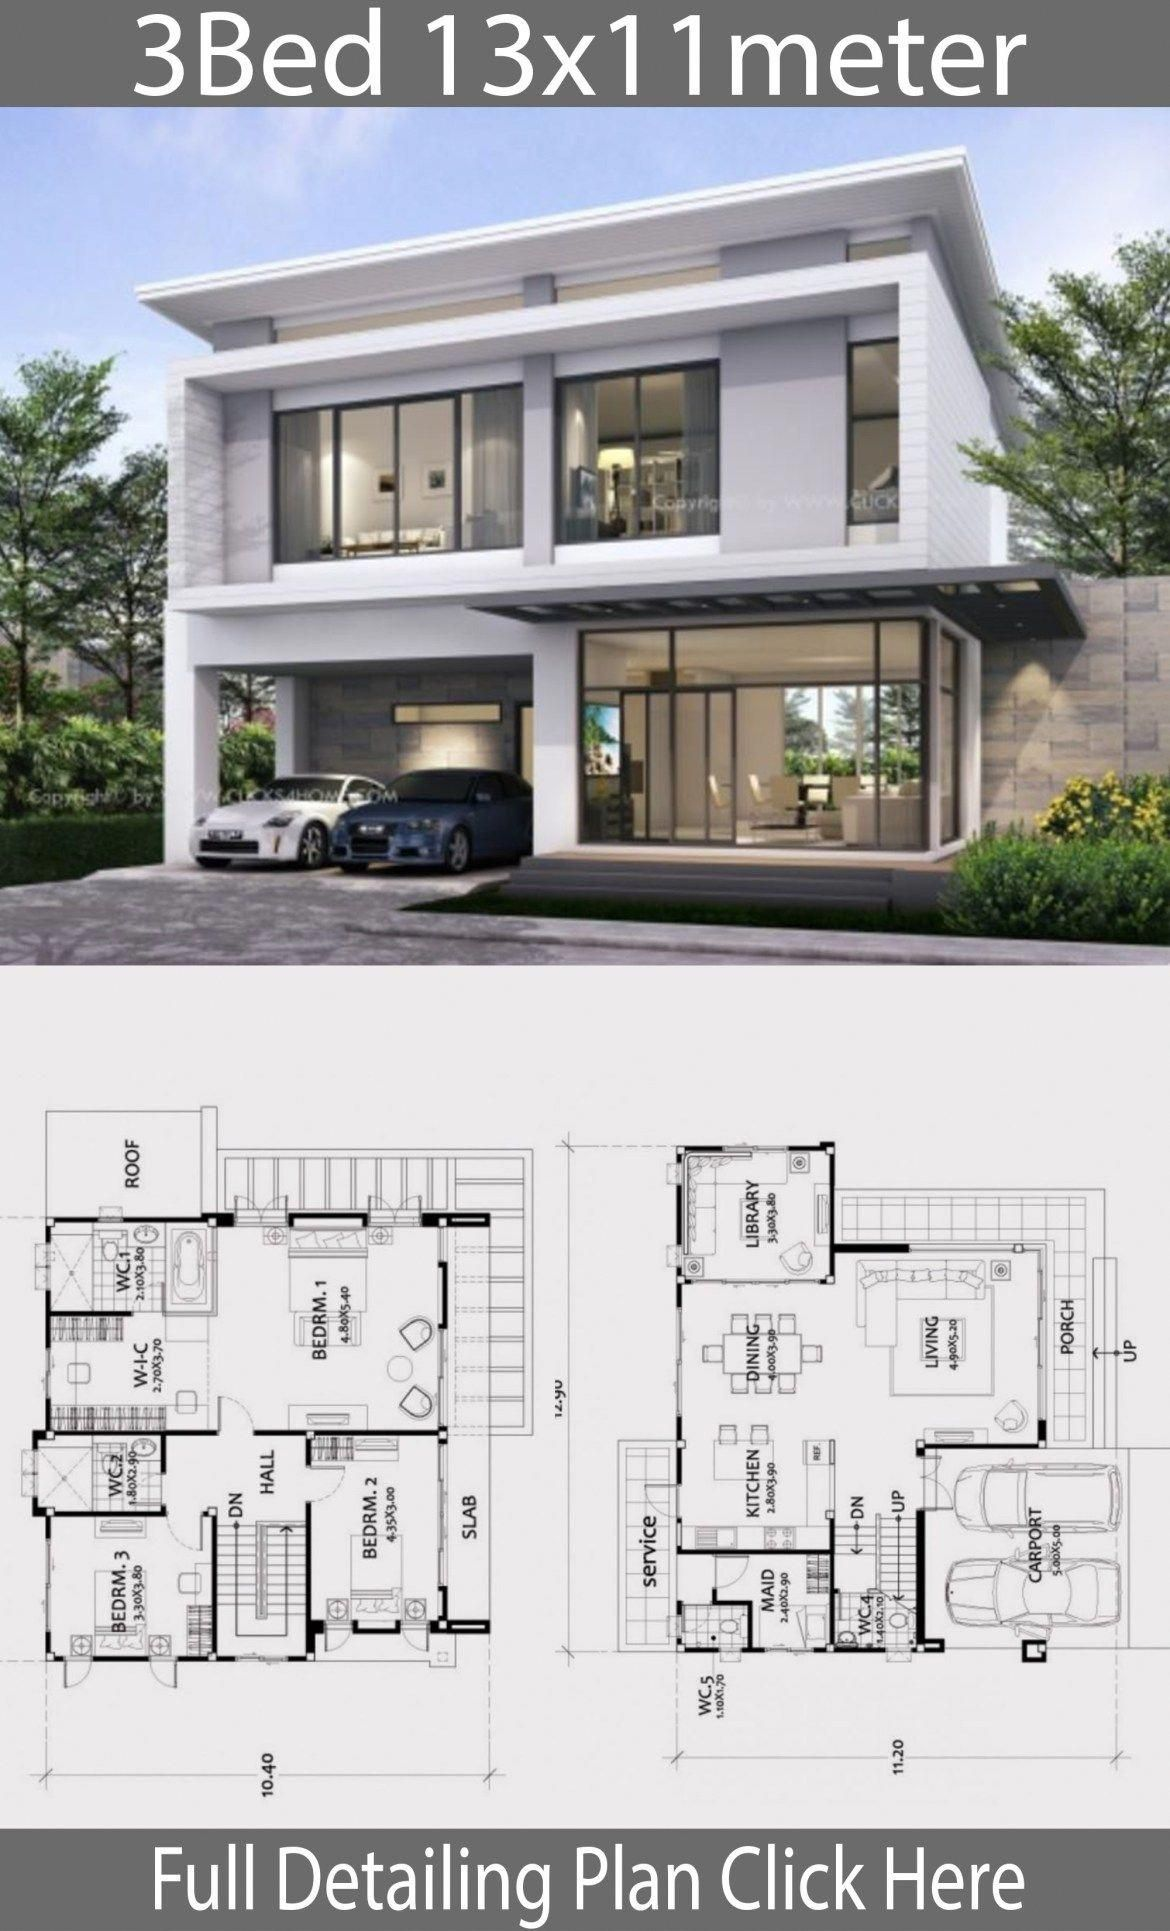 Stunning Discount Home Decor And Furniture Luxuryhomeinterior Modern House Plans House Designs Exterior Architectural House Plans